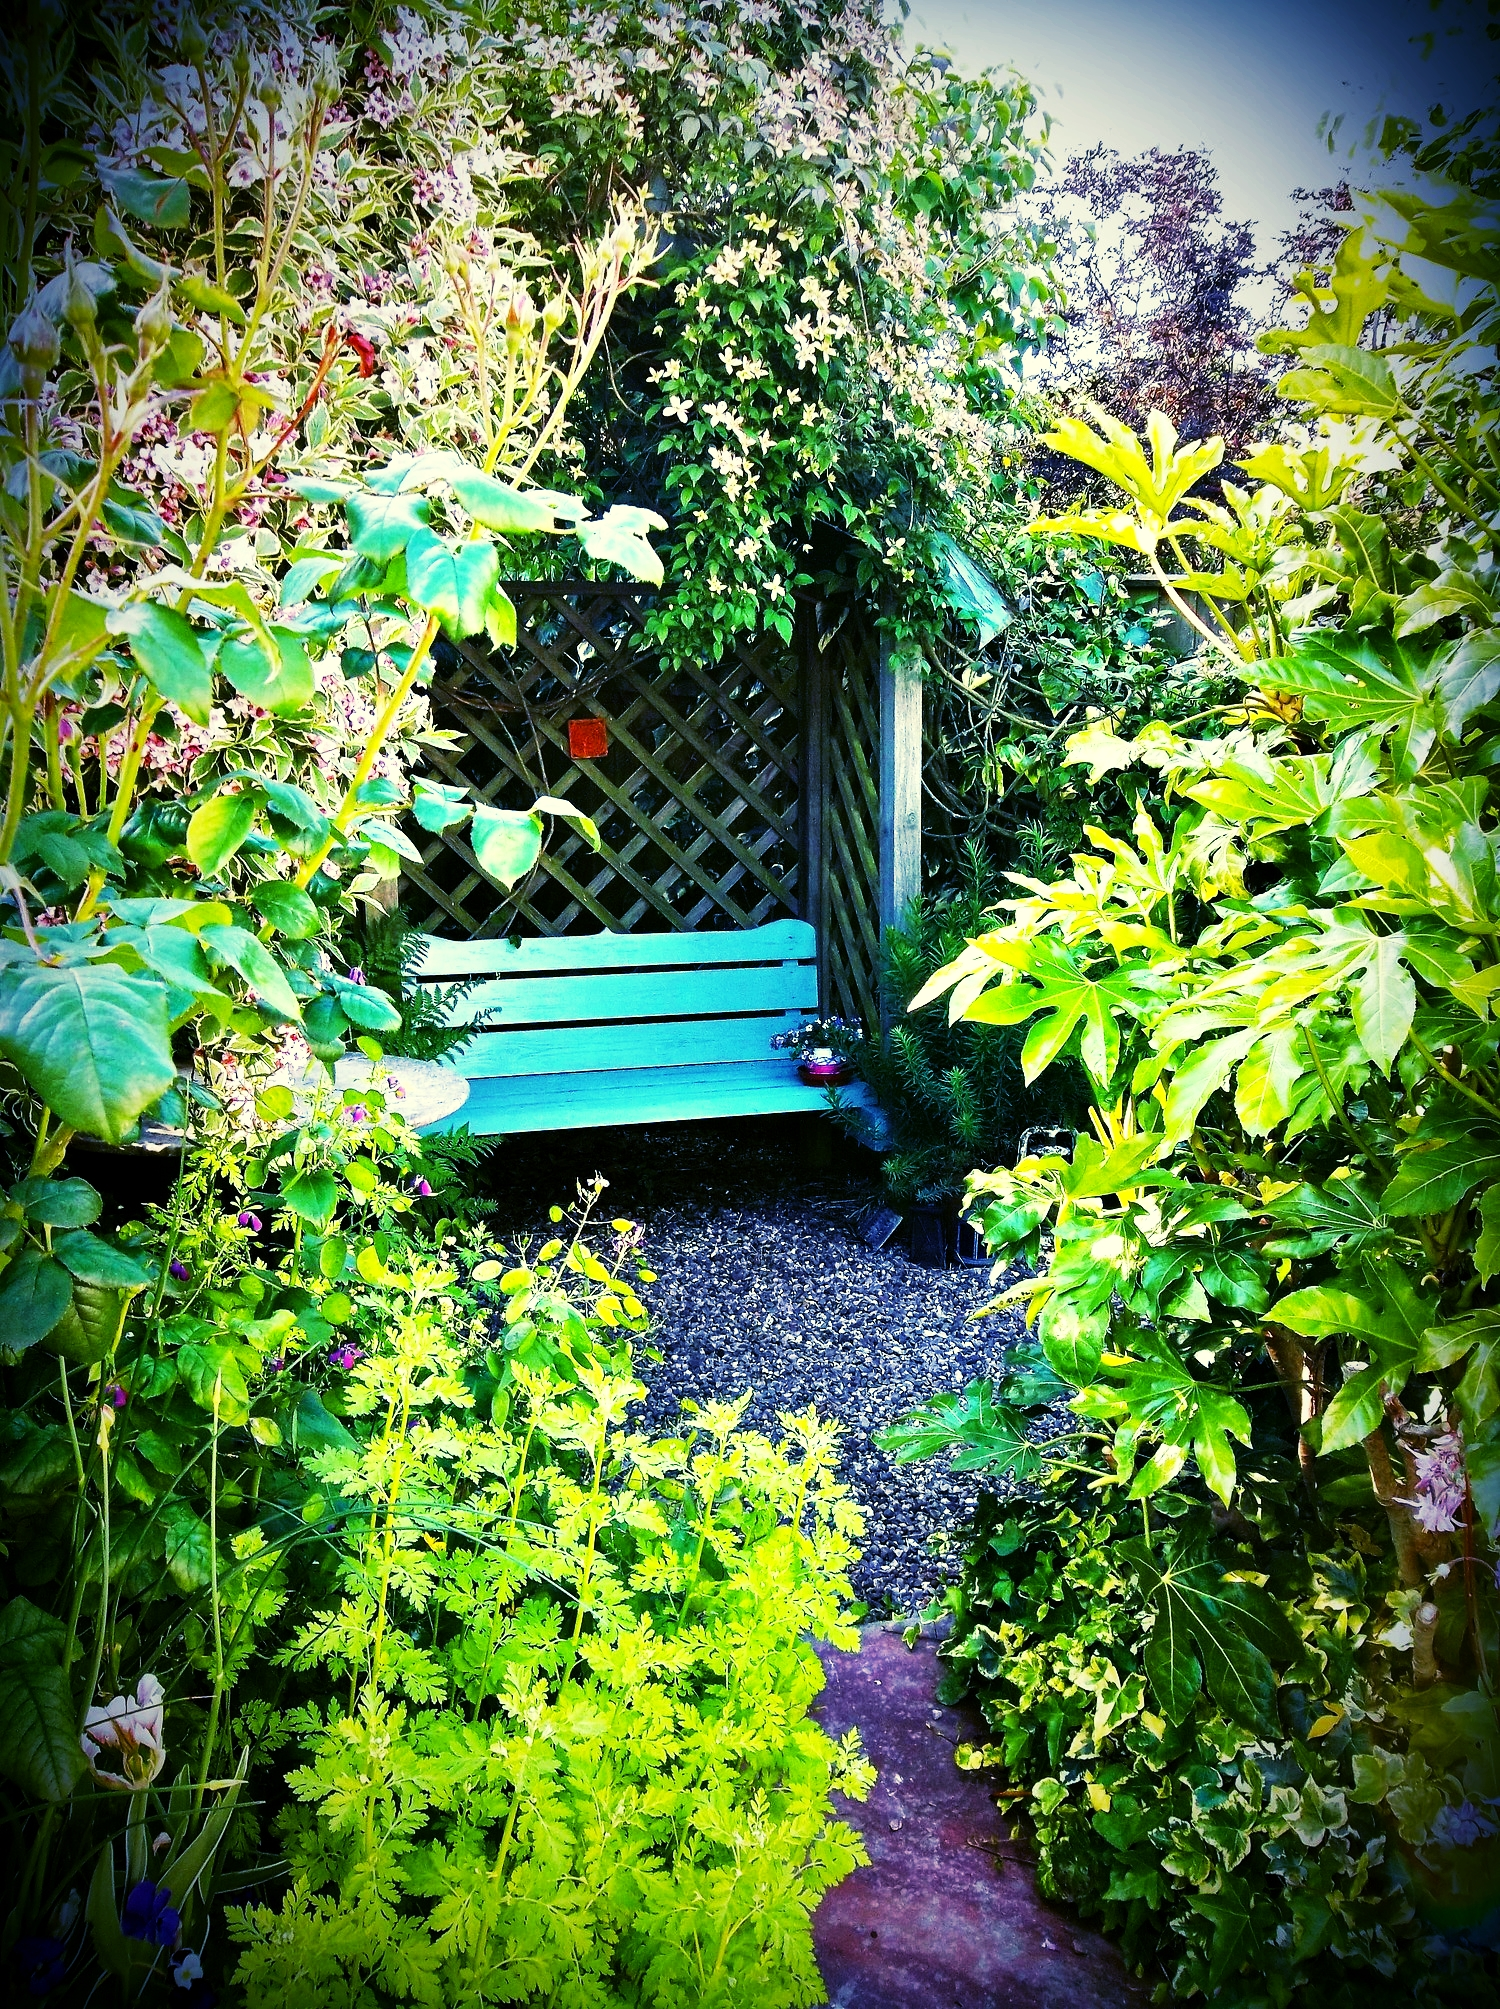 An invitation to sit and ponder, surrounded by bird song and wildlife